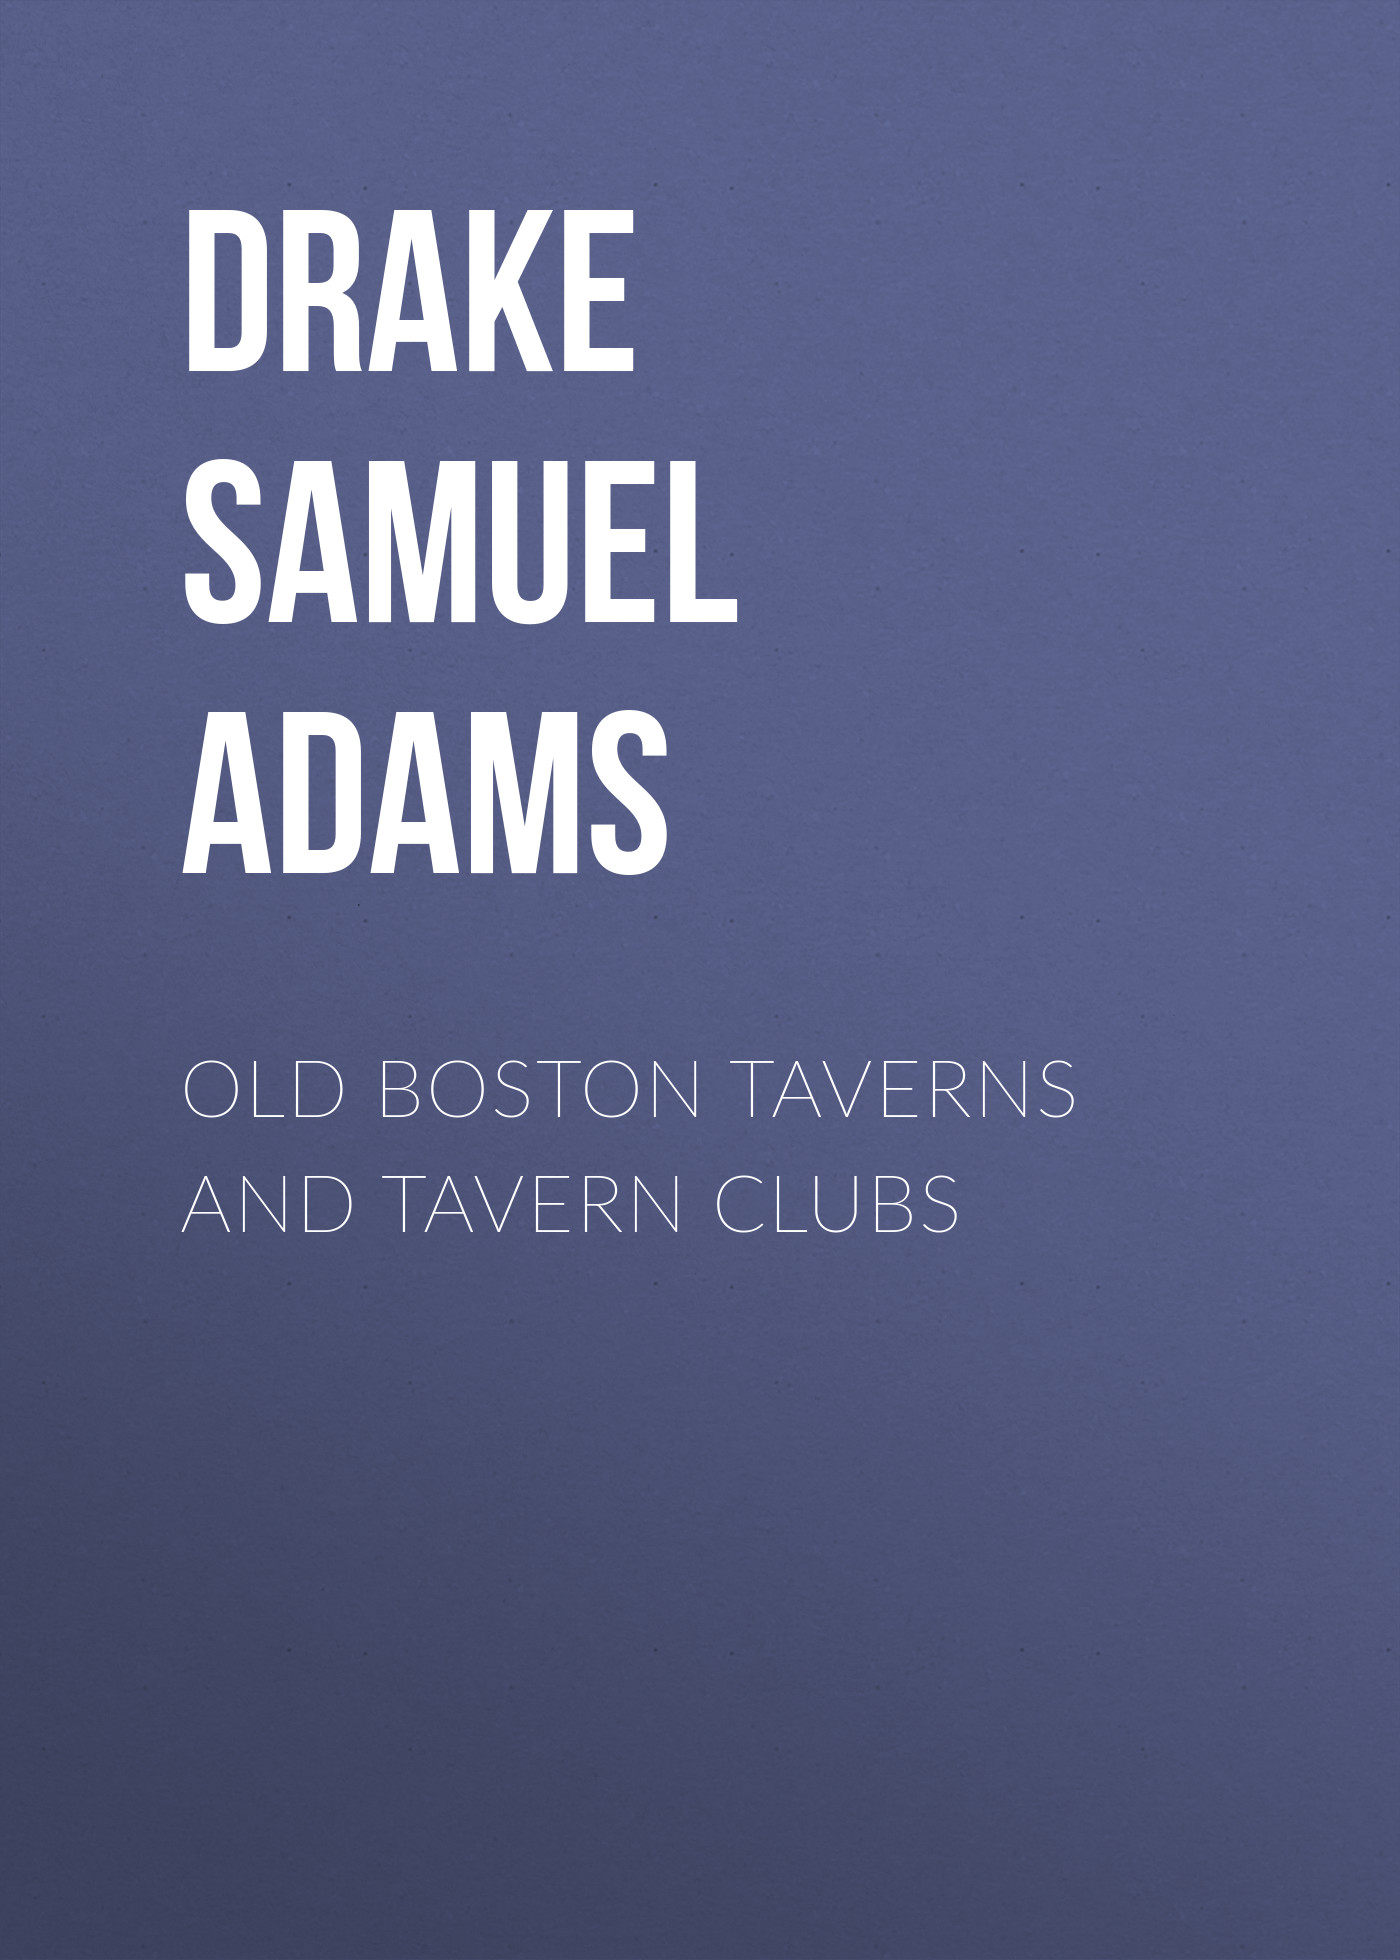 цена на Drake Samuel Adams Old Boston Taverns and Tavern Clubs